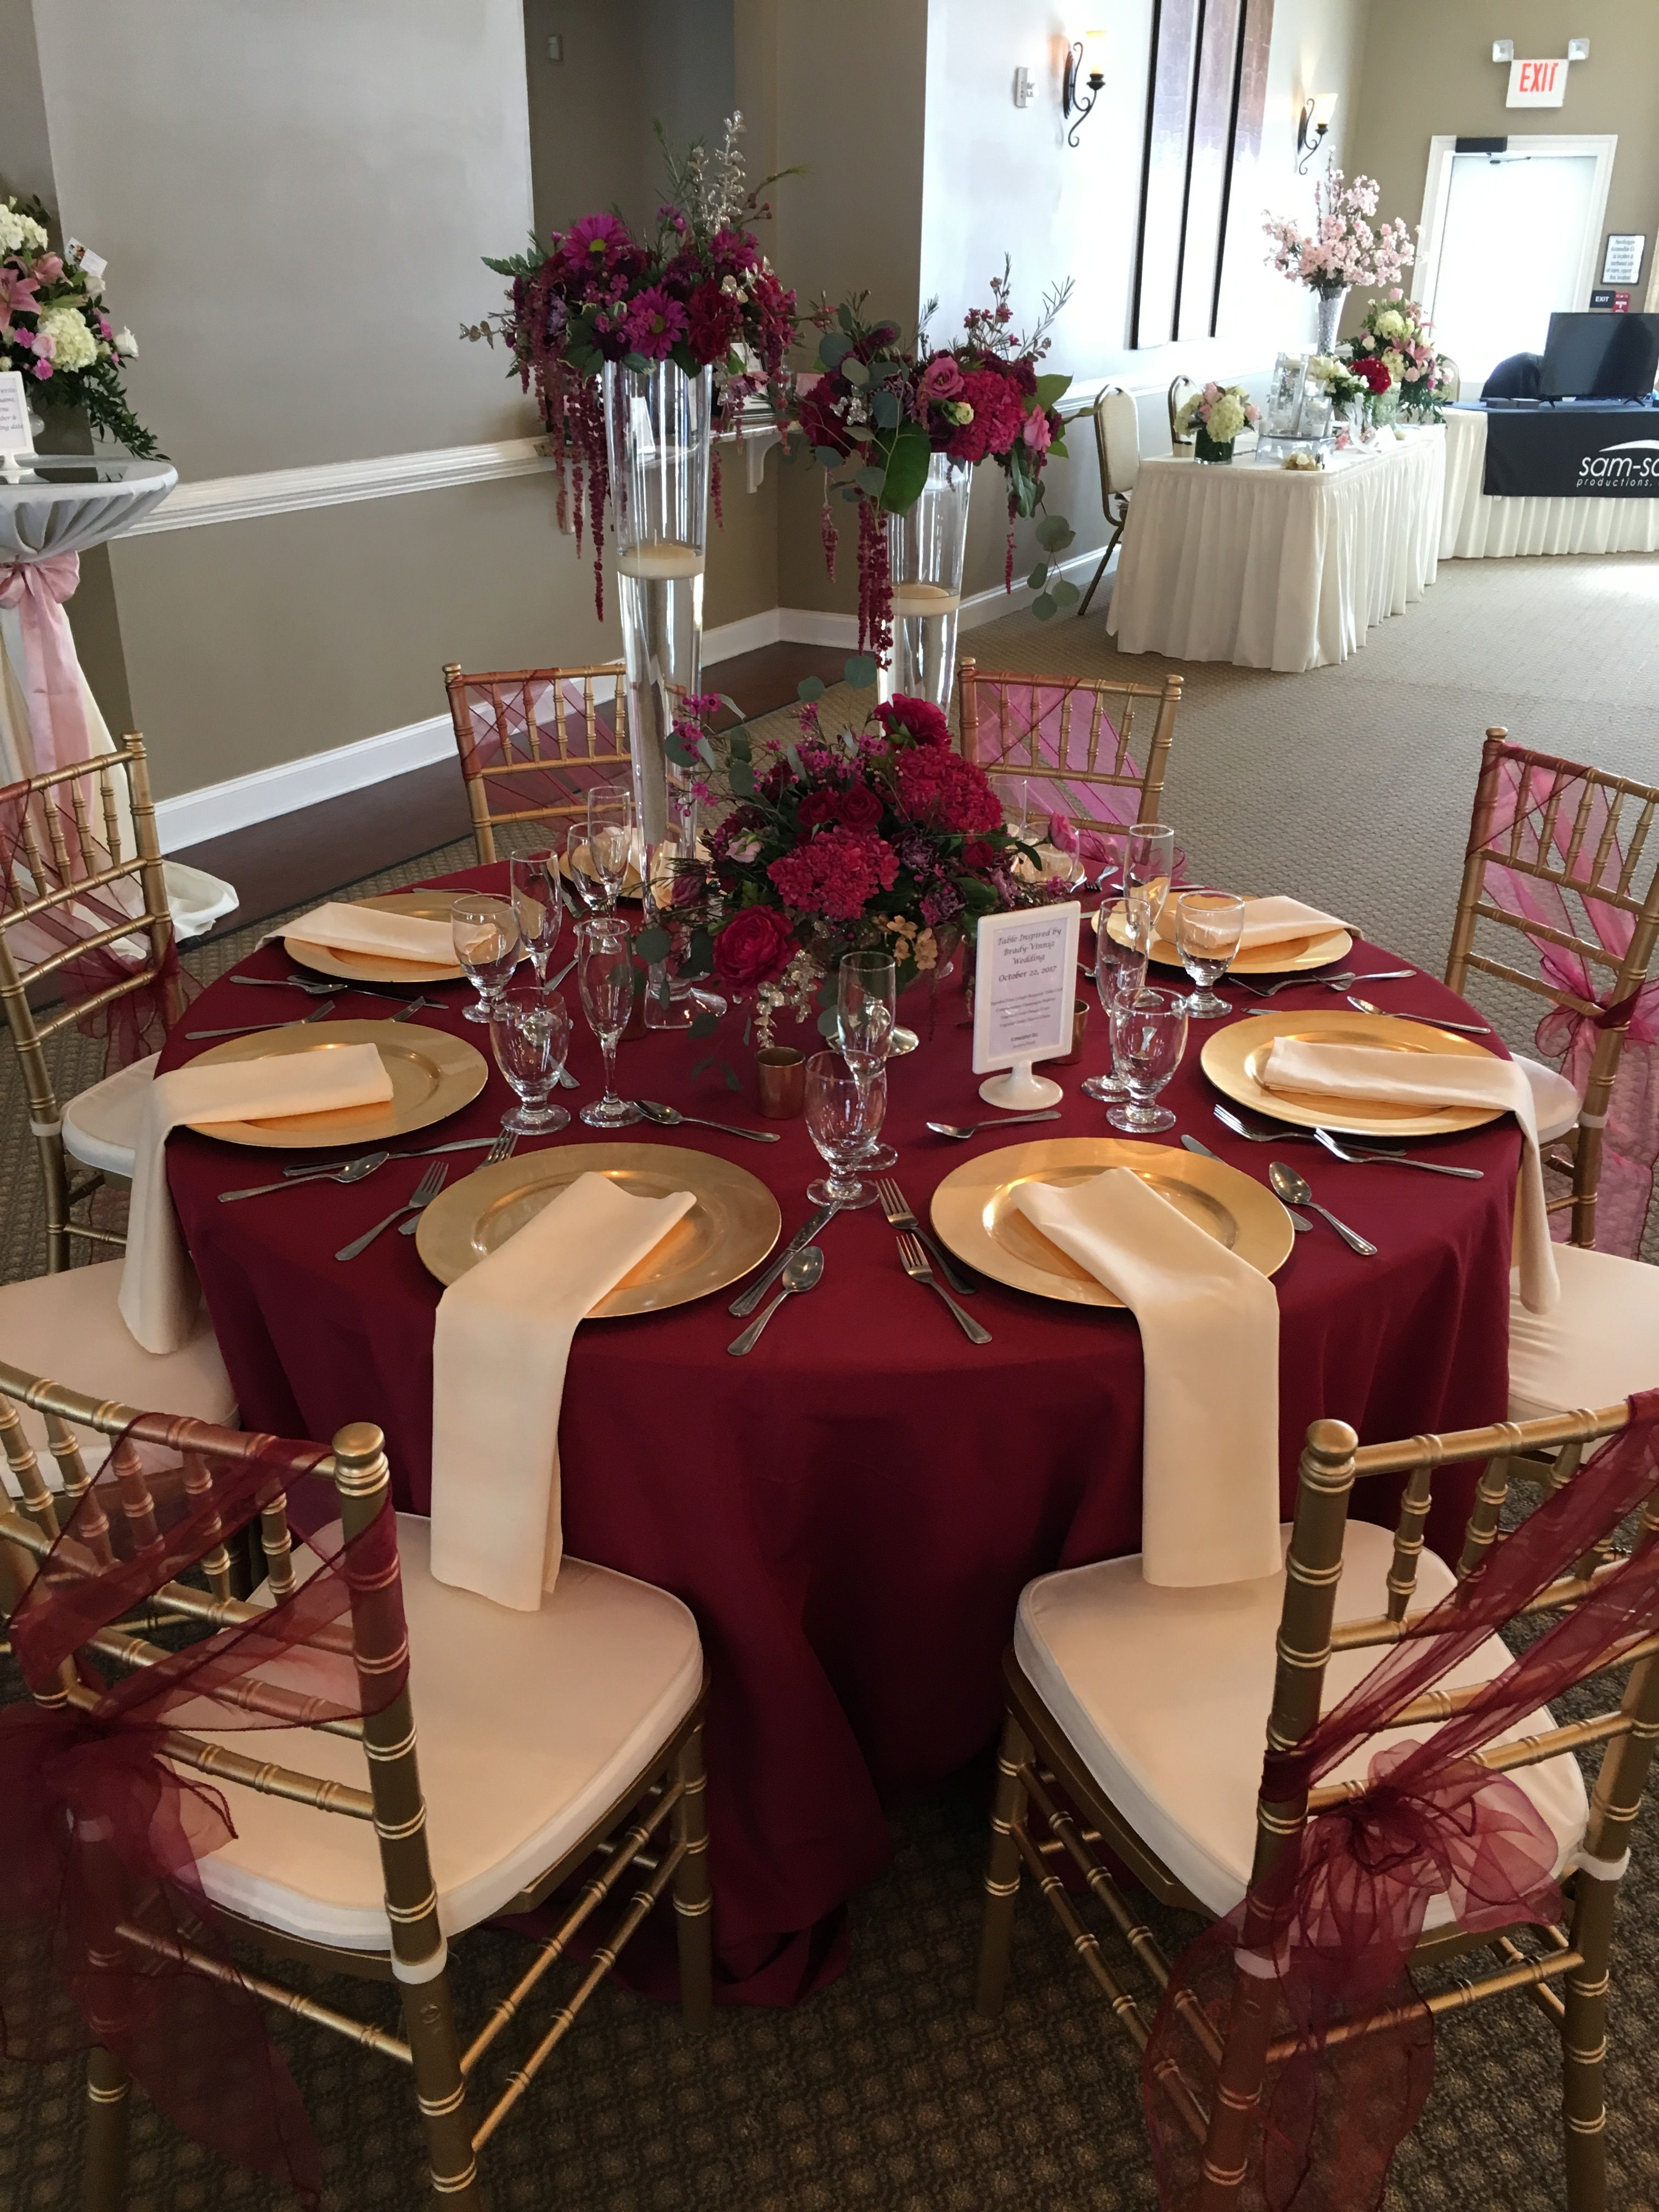 Chair Covers Cape Town Office Cushion Walmart This Gorgeous Table Set Up Is Filled With Upgrades! Floor Length Burgundy Cloth, Champagne ...